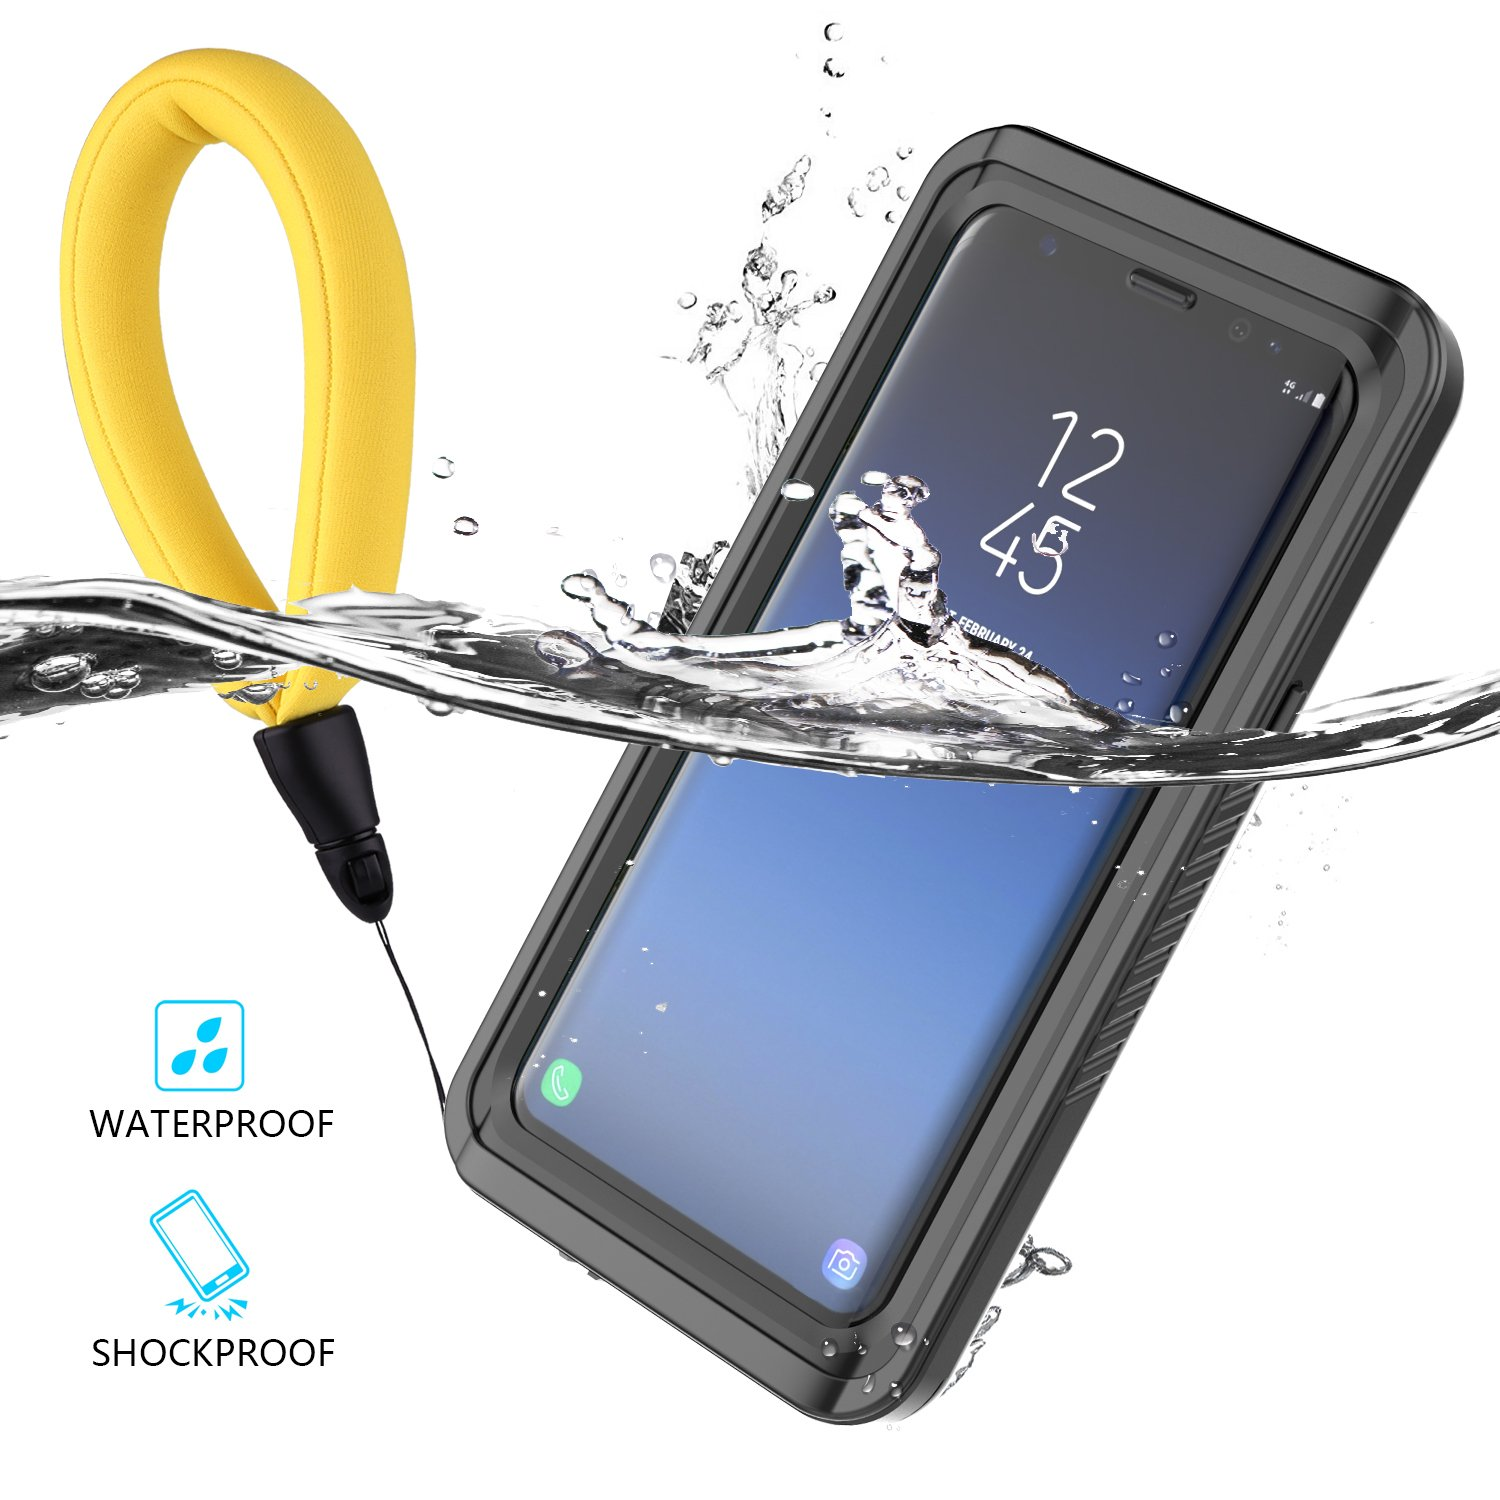 Yuqoka Compatible Samsung Galaxy S9 Plus Case Waterproof Transparent Cover Outdoor Sport Underwater IP68 Certification Full Body Protective Shockproof ...